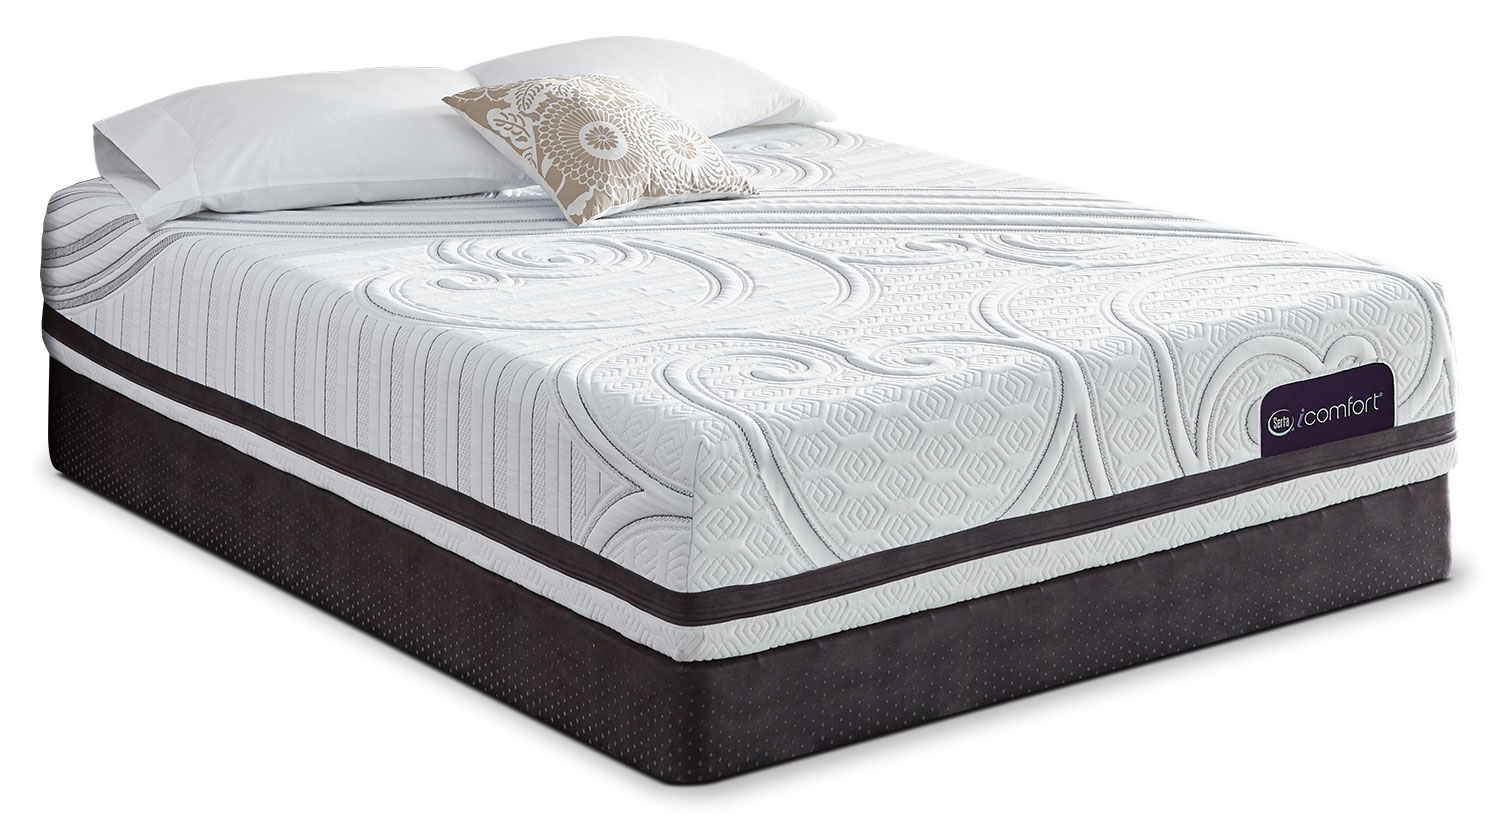 Serta iComfort Visionary Firm 2 Queen Mattress with Low-Profile Split Boxspring Set